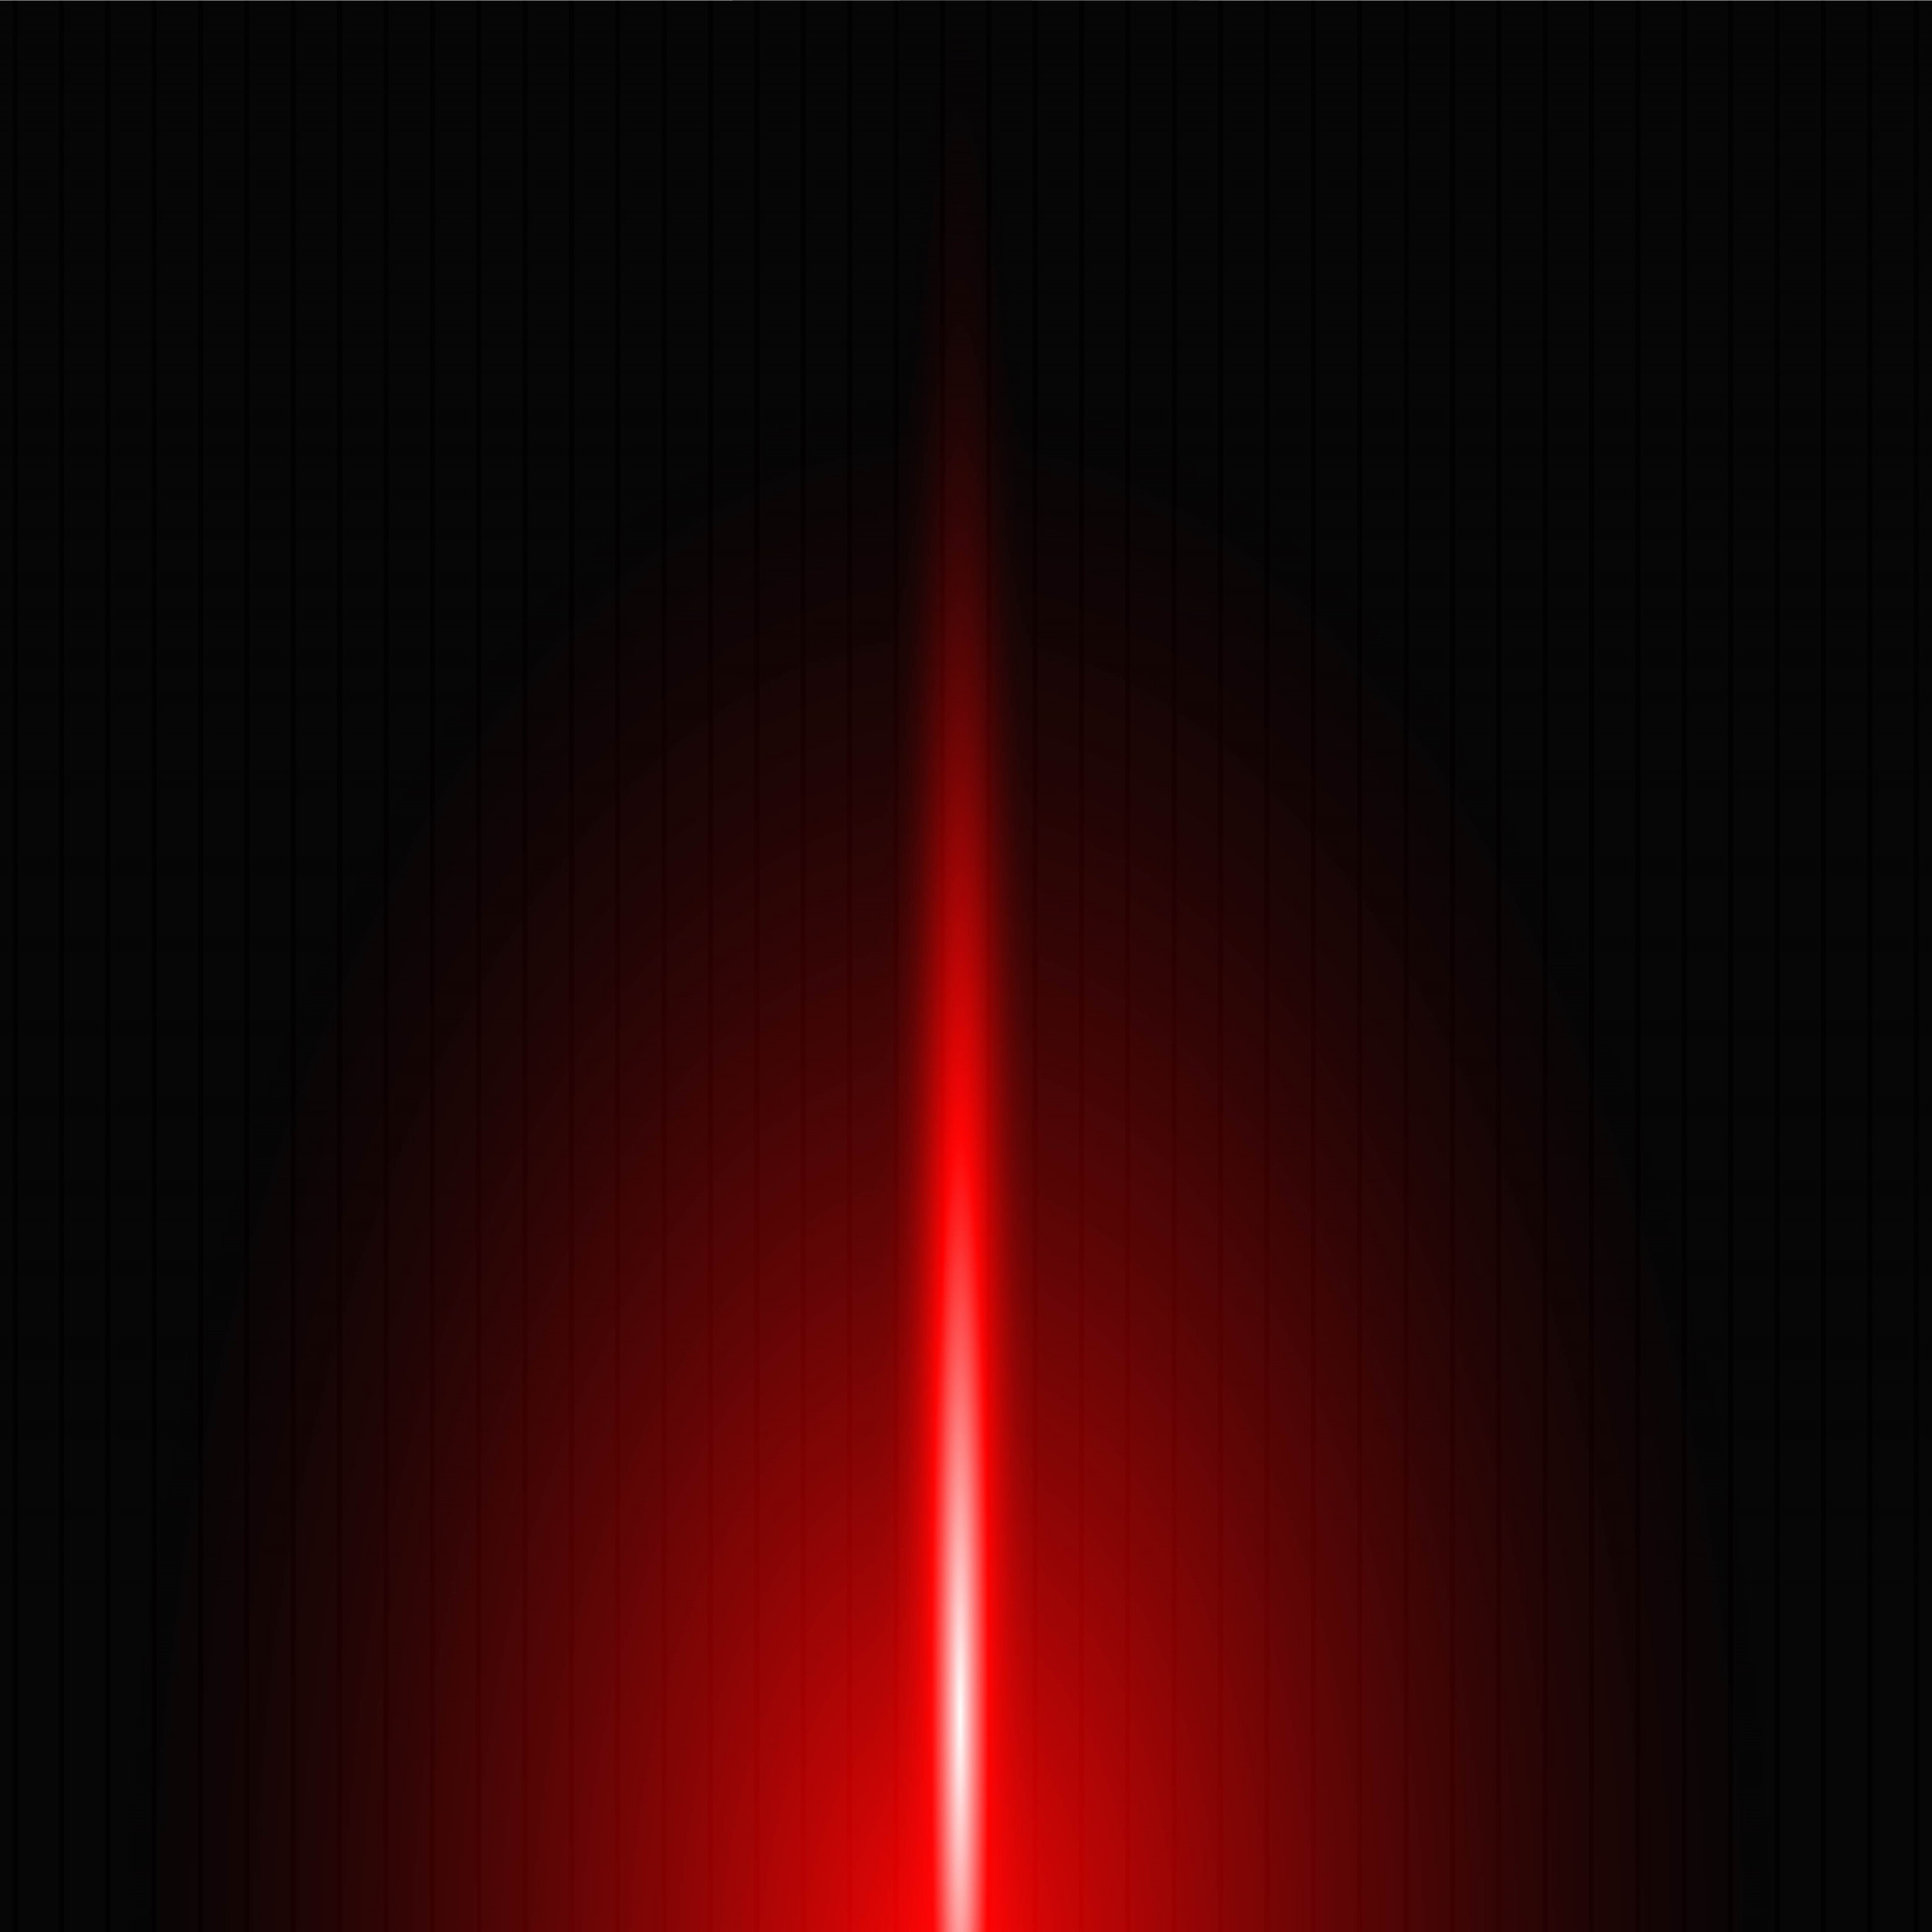 Abstract black modern tech metallic red shiny background